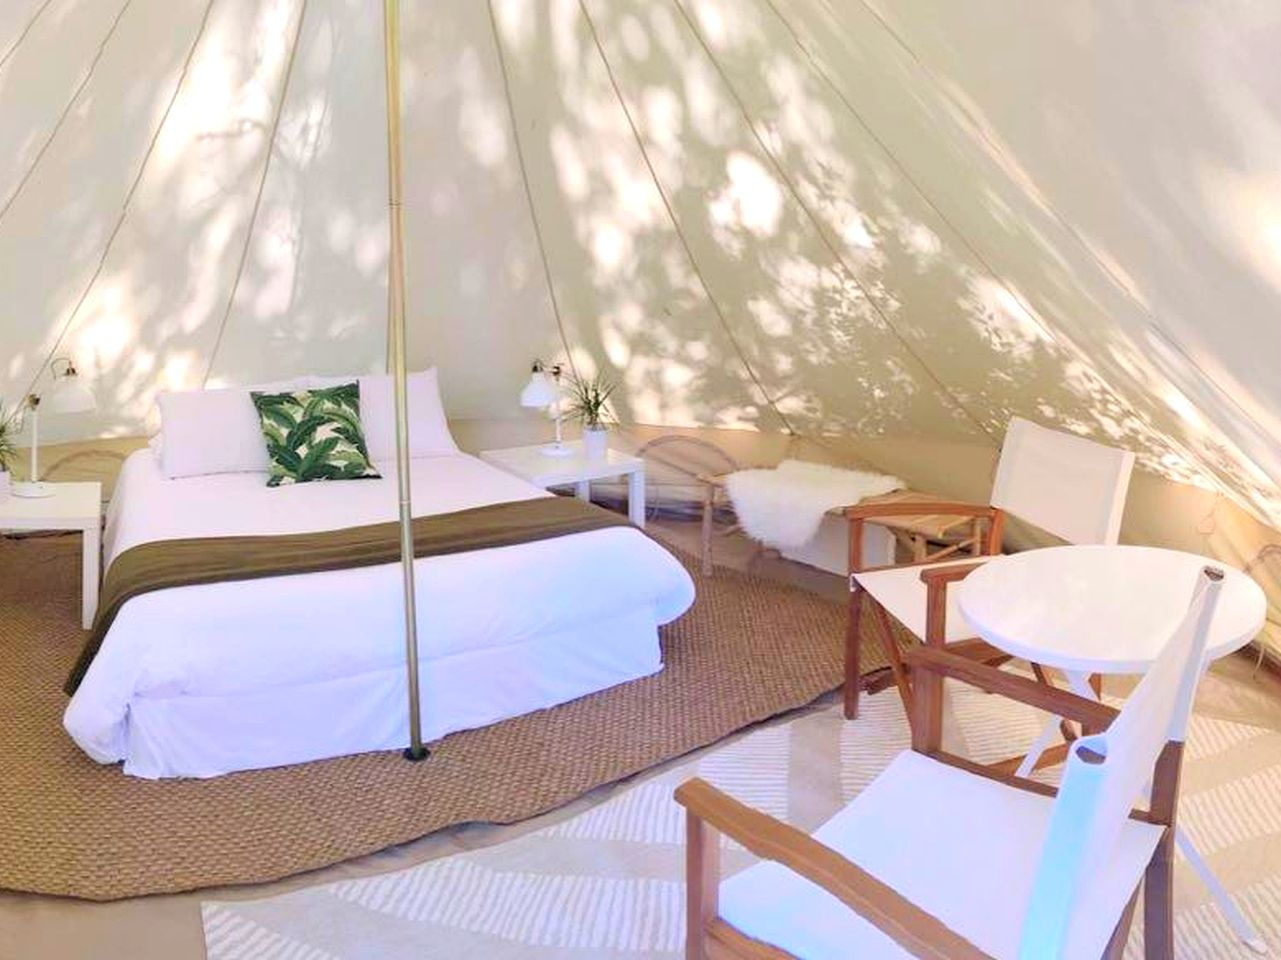 Bell Tents (Santa Rosa Beach, Florida, United States)